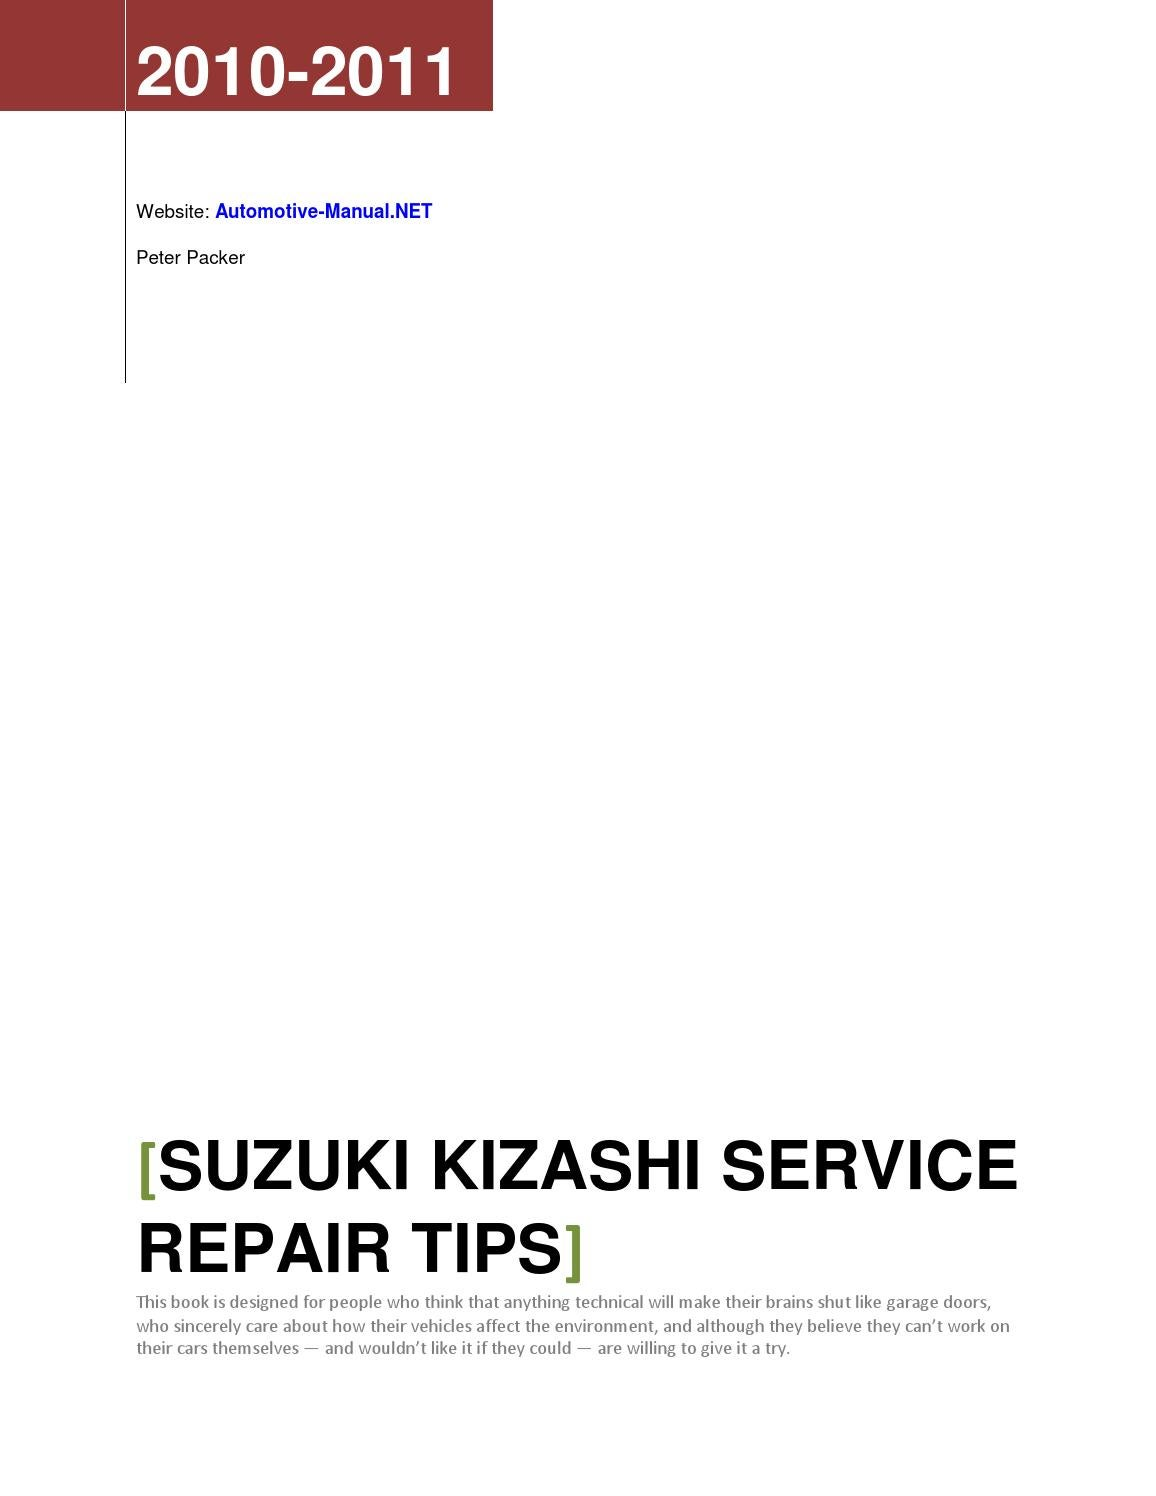 Suzuki Kizashi 2010-2011 Service Repair Tips by Armando